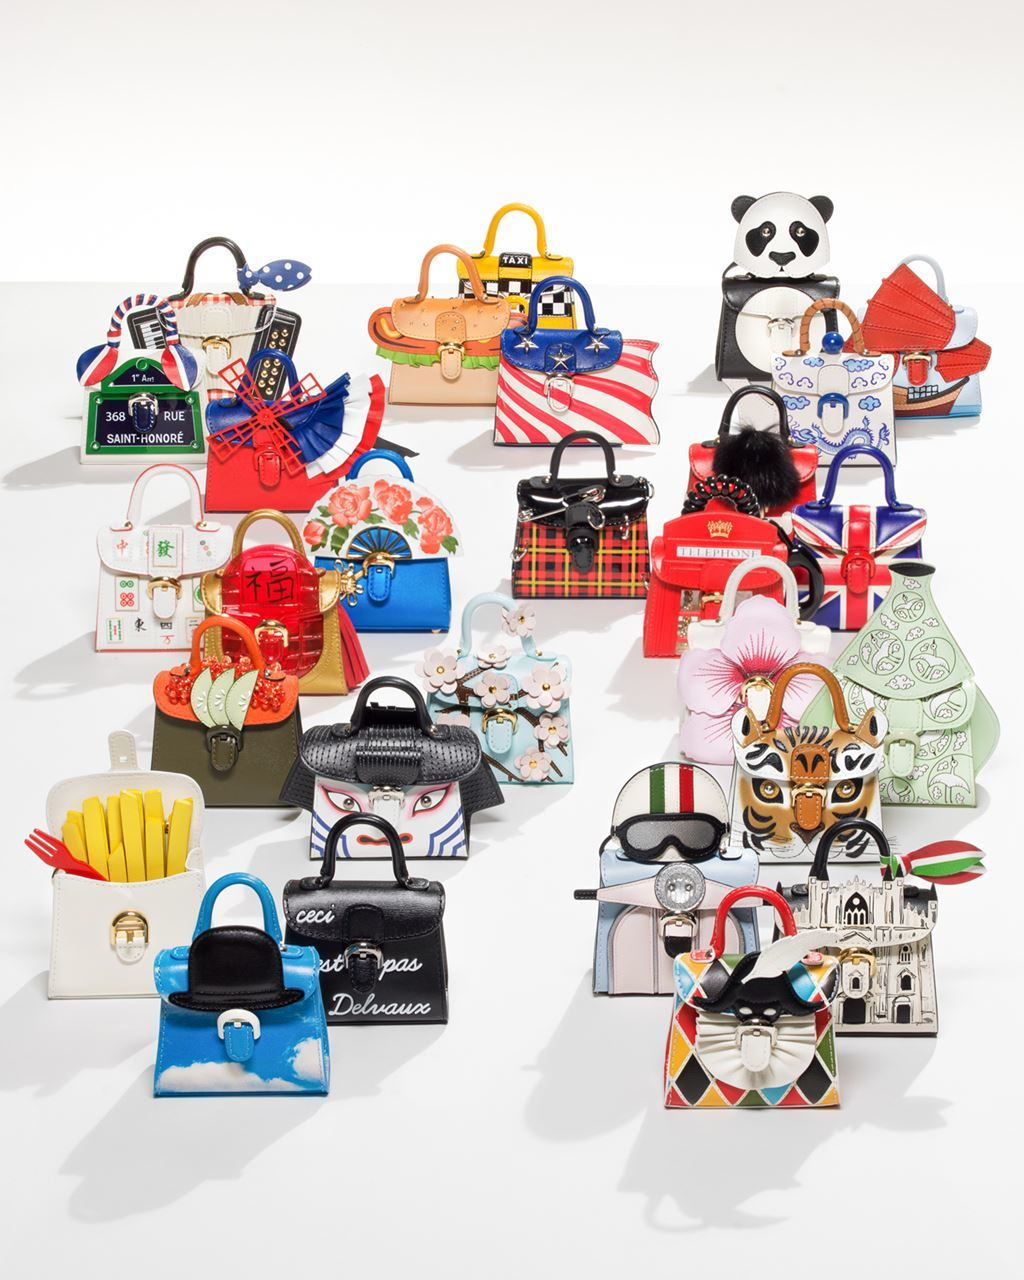 DELVAUX「MINIATURES AROUND THE WORLD」集合